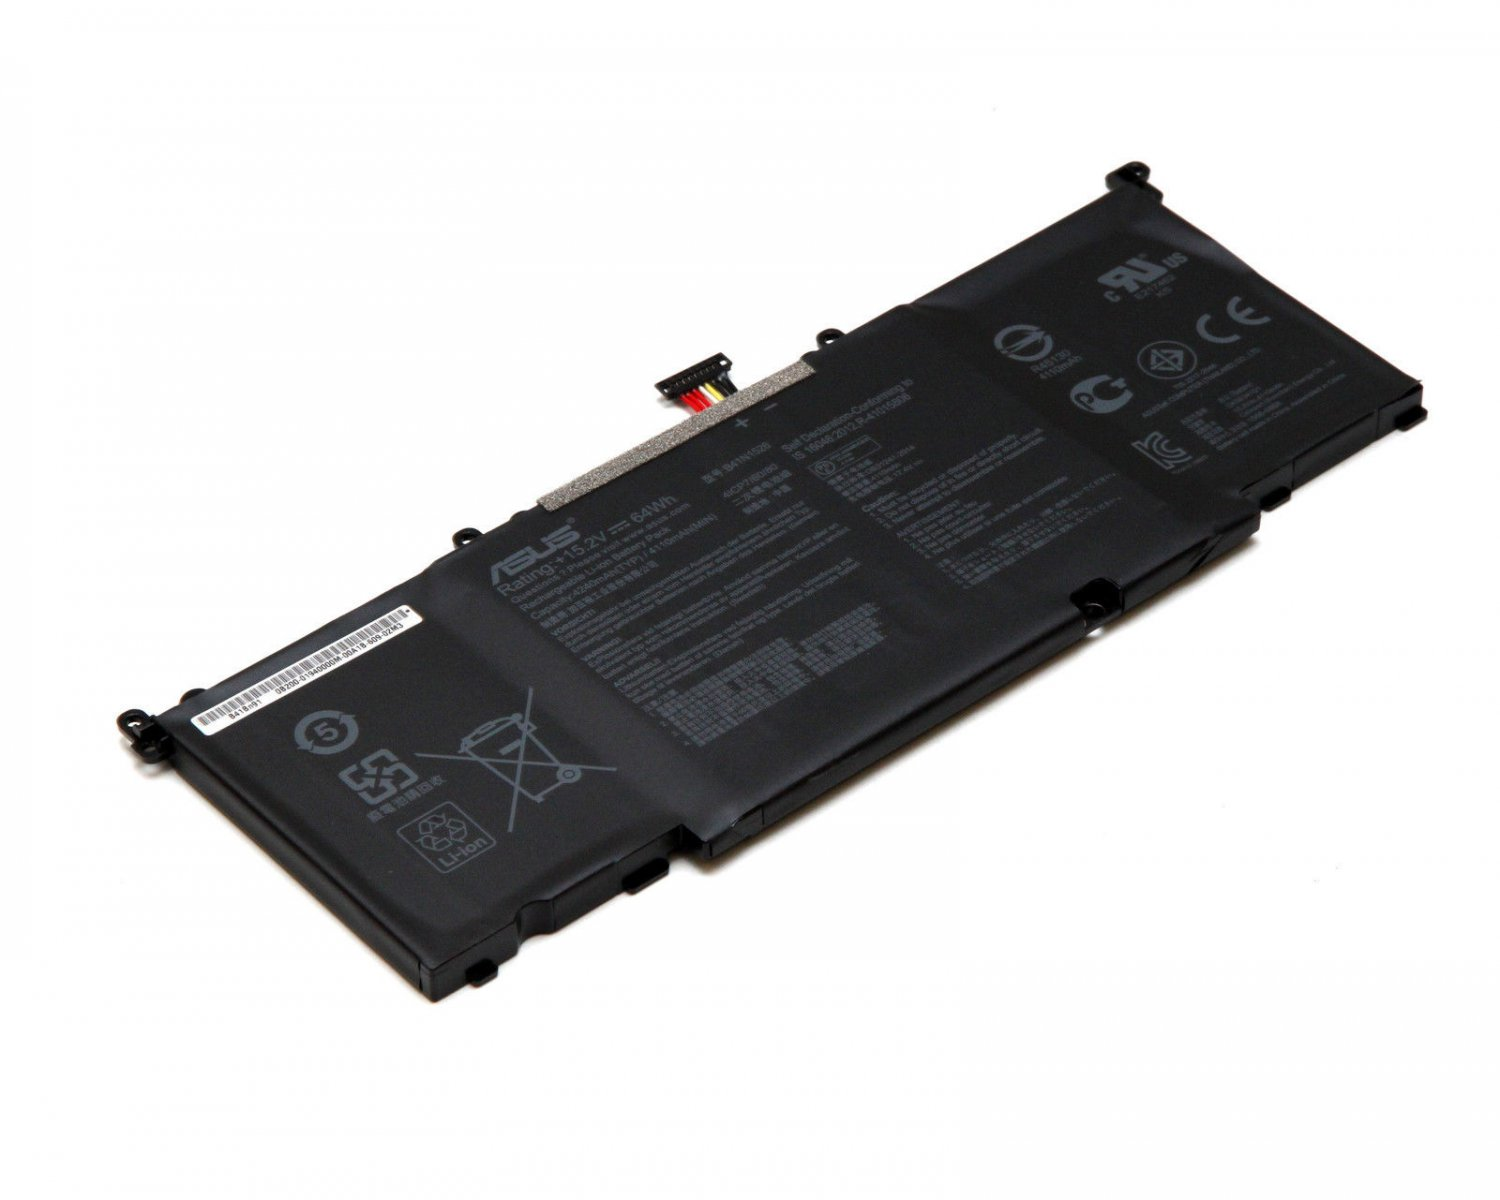 Asus B41N1526 Battery For Asus ROG Strix GL502 GL502V GL502VT S5 S5VT6700